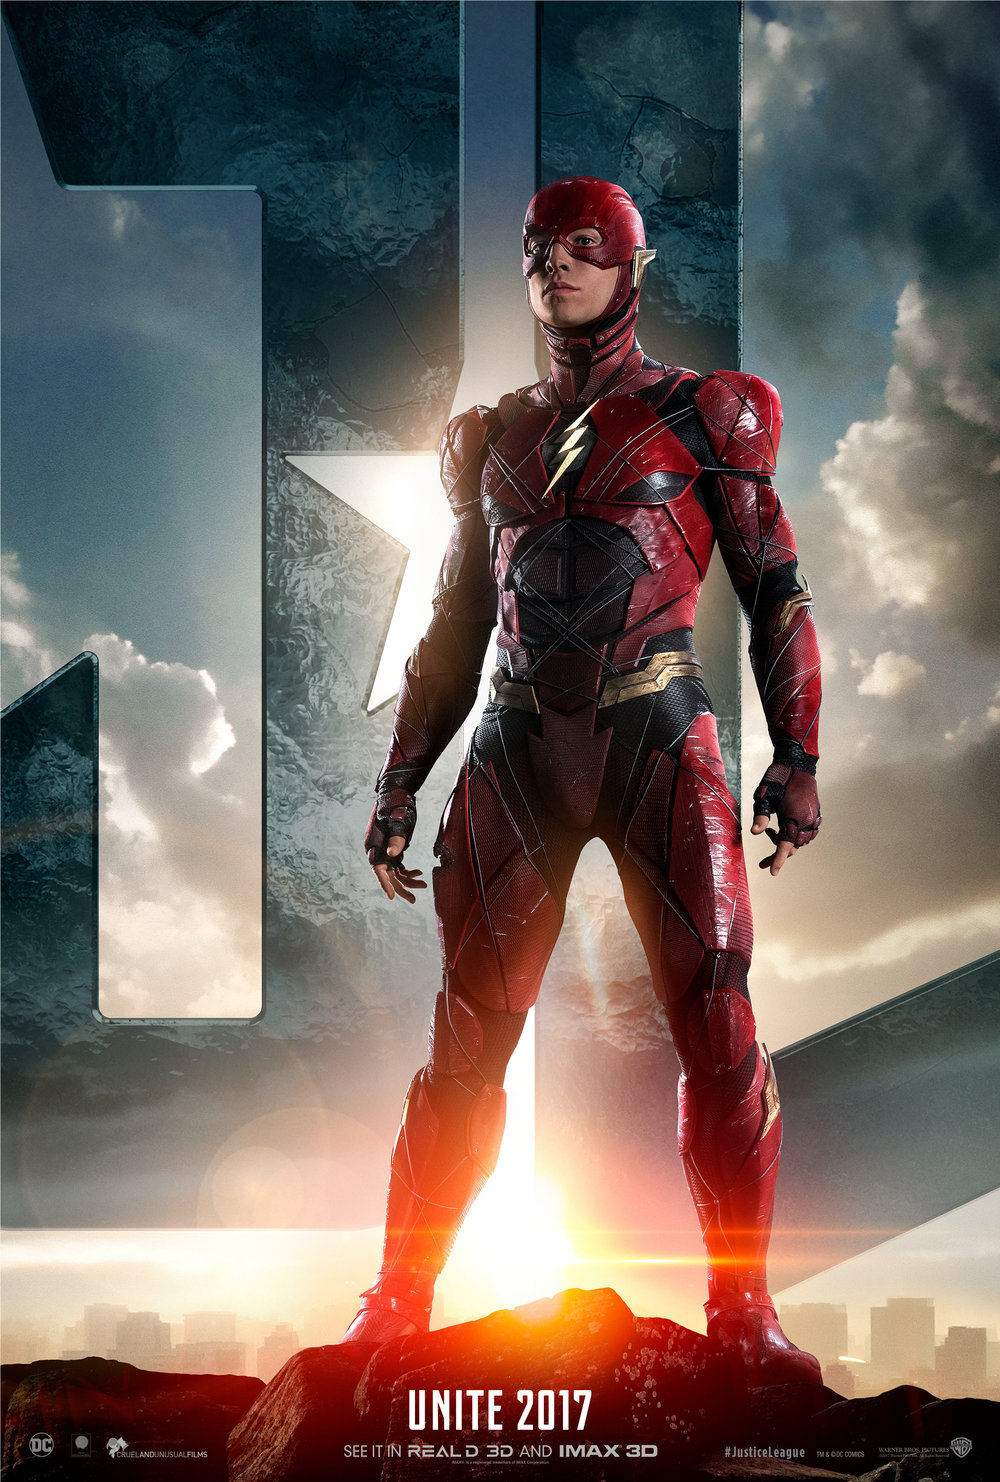 the-flash-is-the-latest-justice-league-hero-to-get-his-own-promo-spot-and-poster